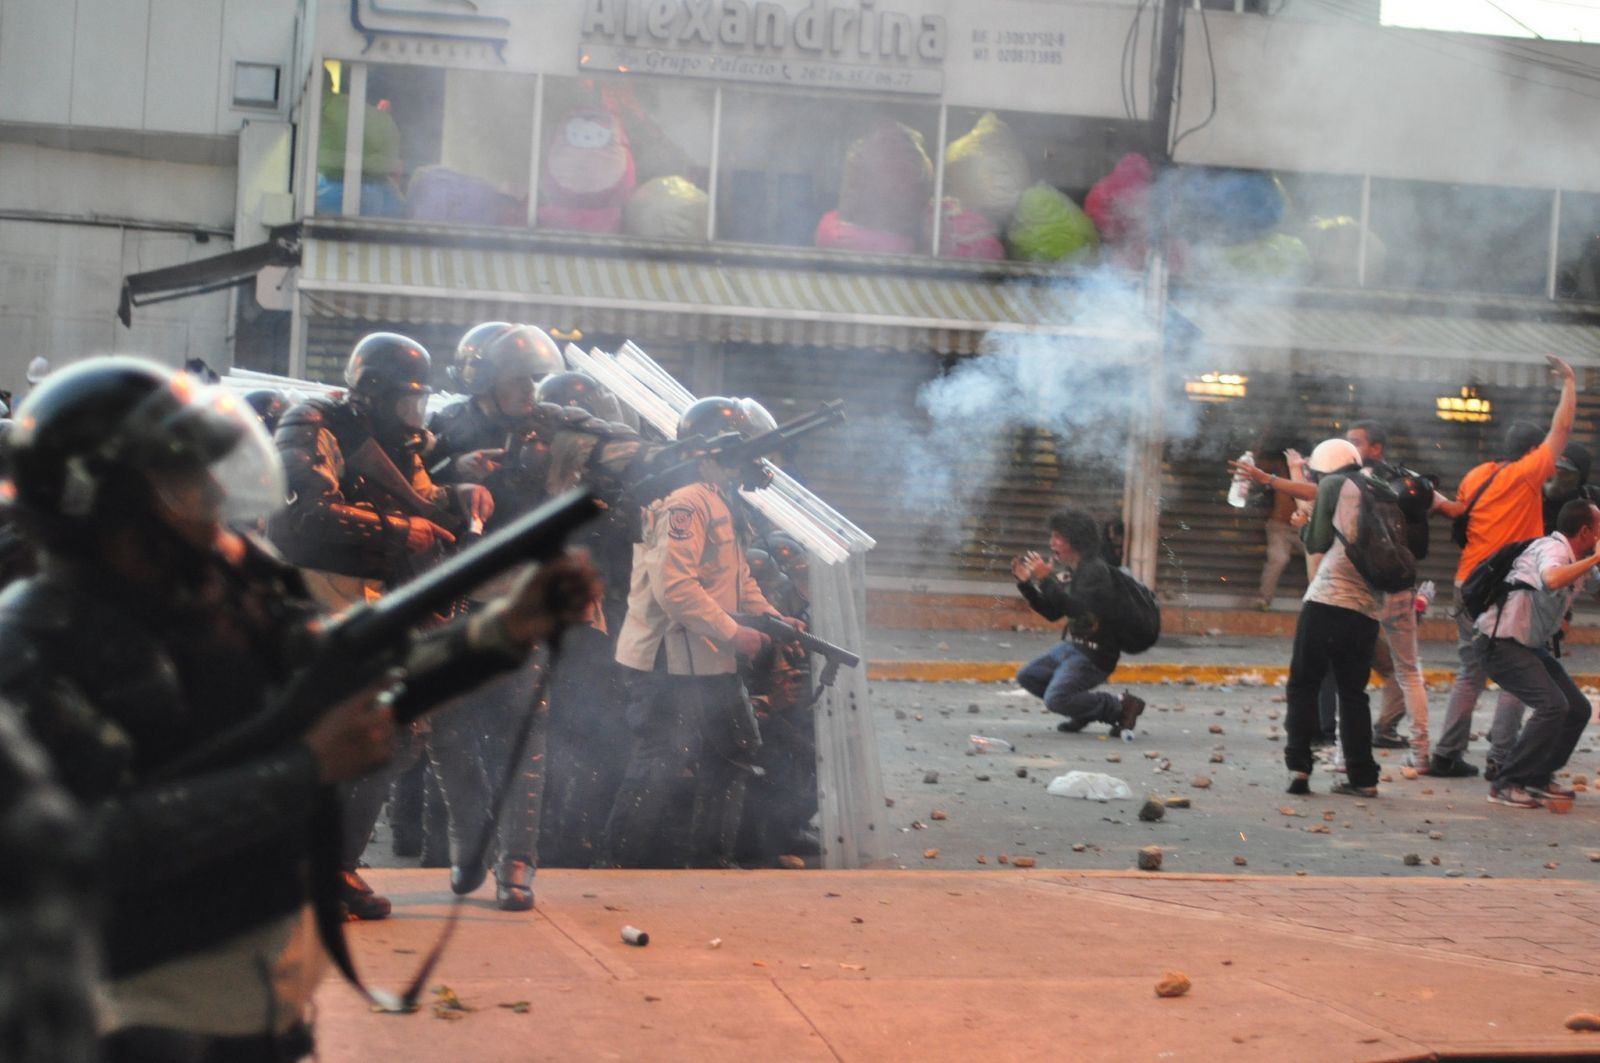 Tear_gas_used_against_protest_in_Altamira,_Caracas;_and_distressed_students_in_front_of_police_line.jpg